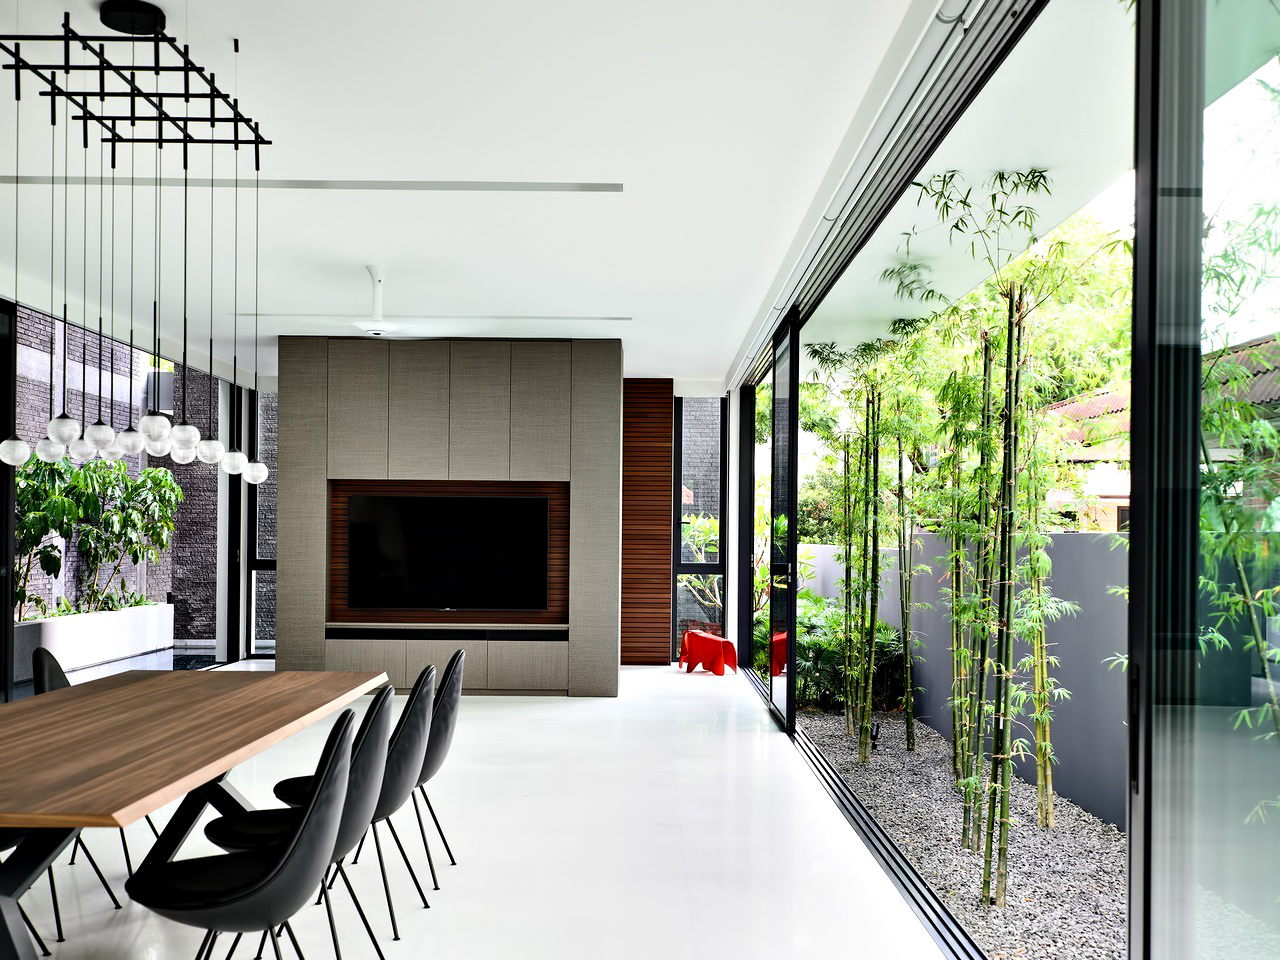 The Space Between Walls House - Prices of Wales Rd, Singapore